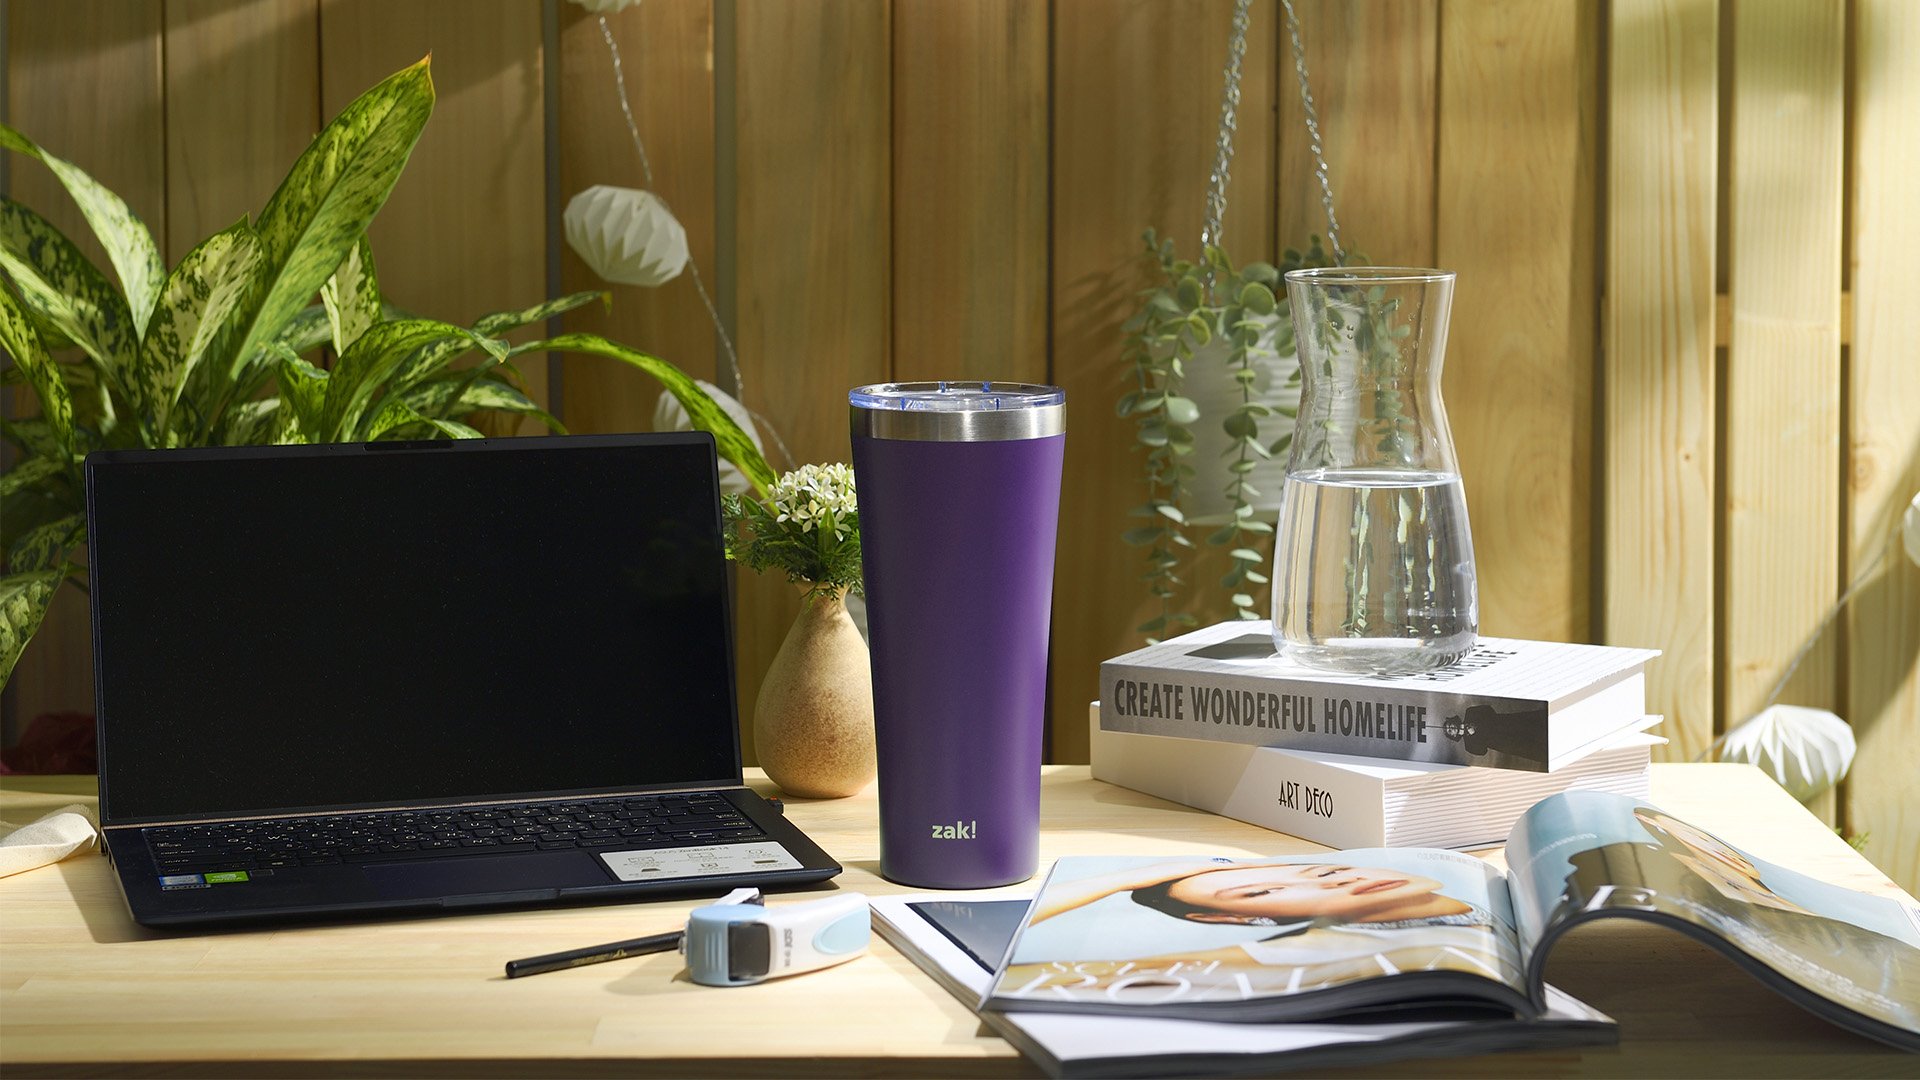 Alpine 30 ounce Stainless Steel Vacuum Insulated Tumbler with Straw, Viola slideshow image 7